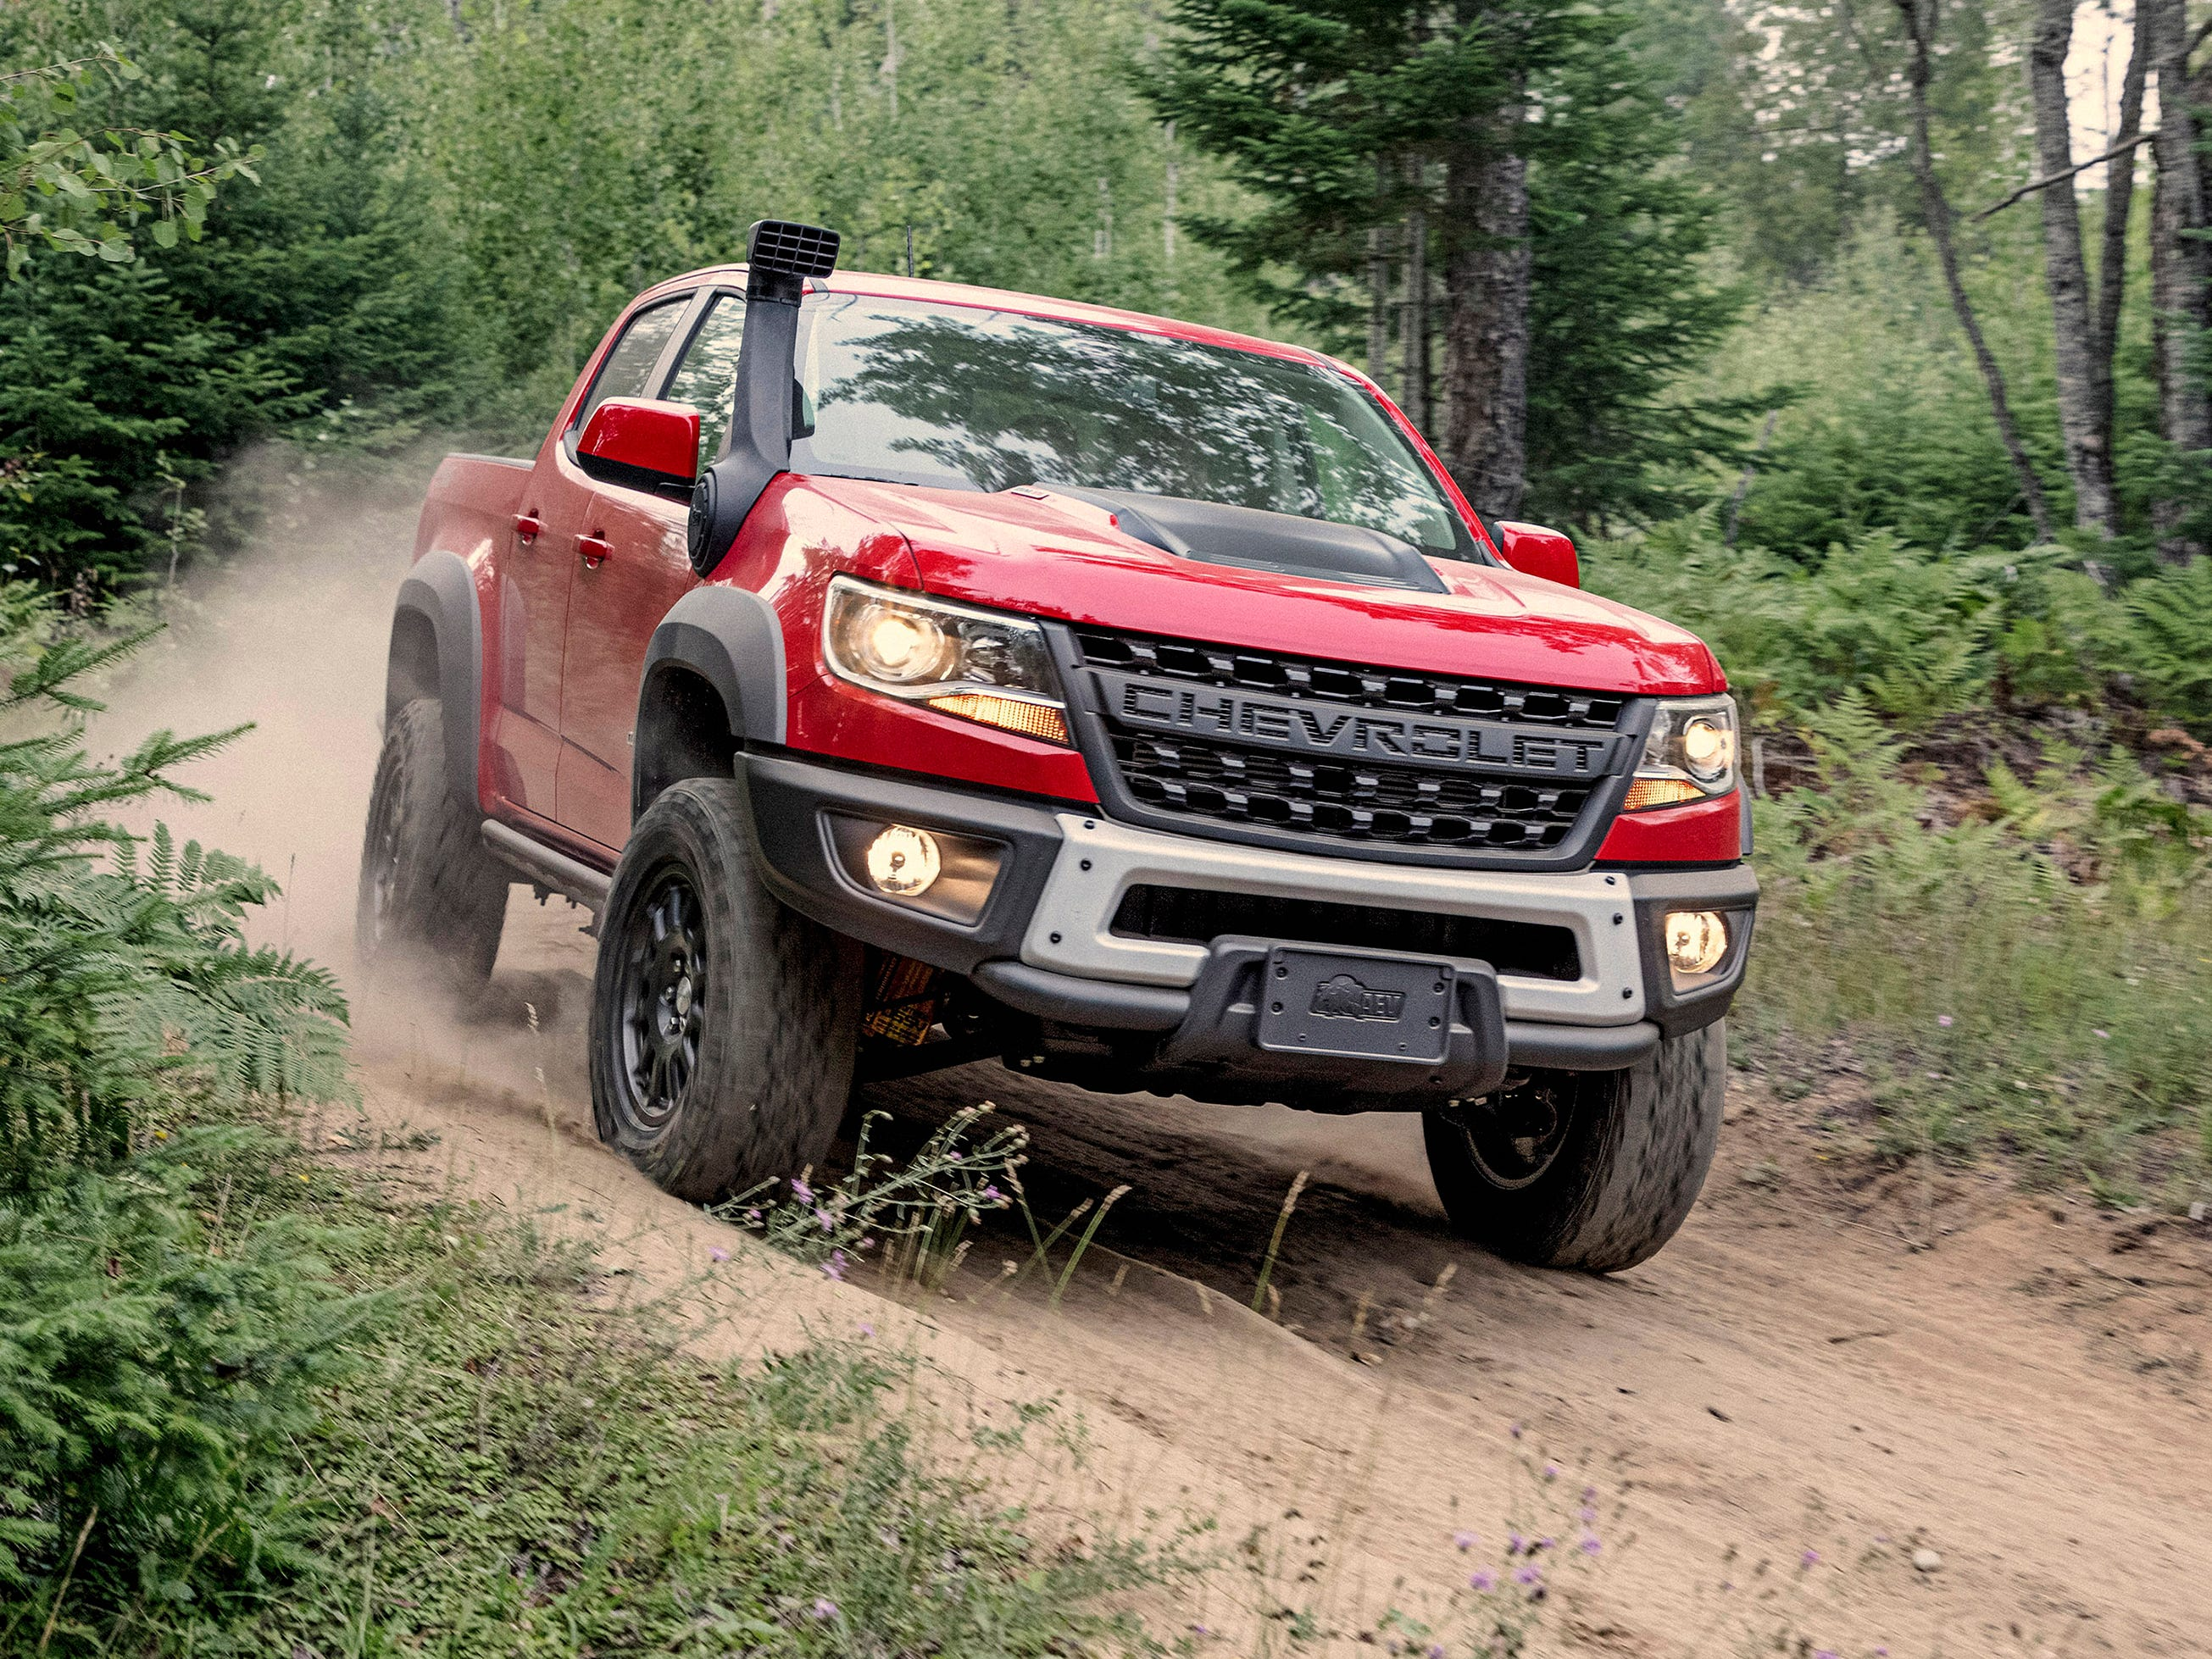 King of the off-road: Ford, Chevy and Ram pickups battle for supremacy